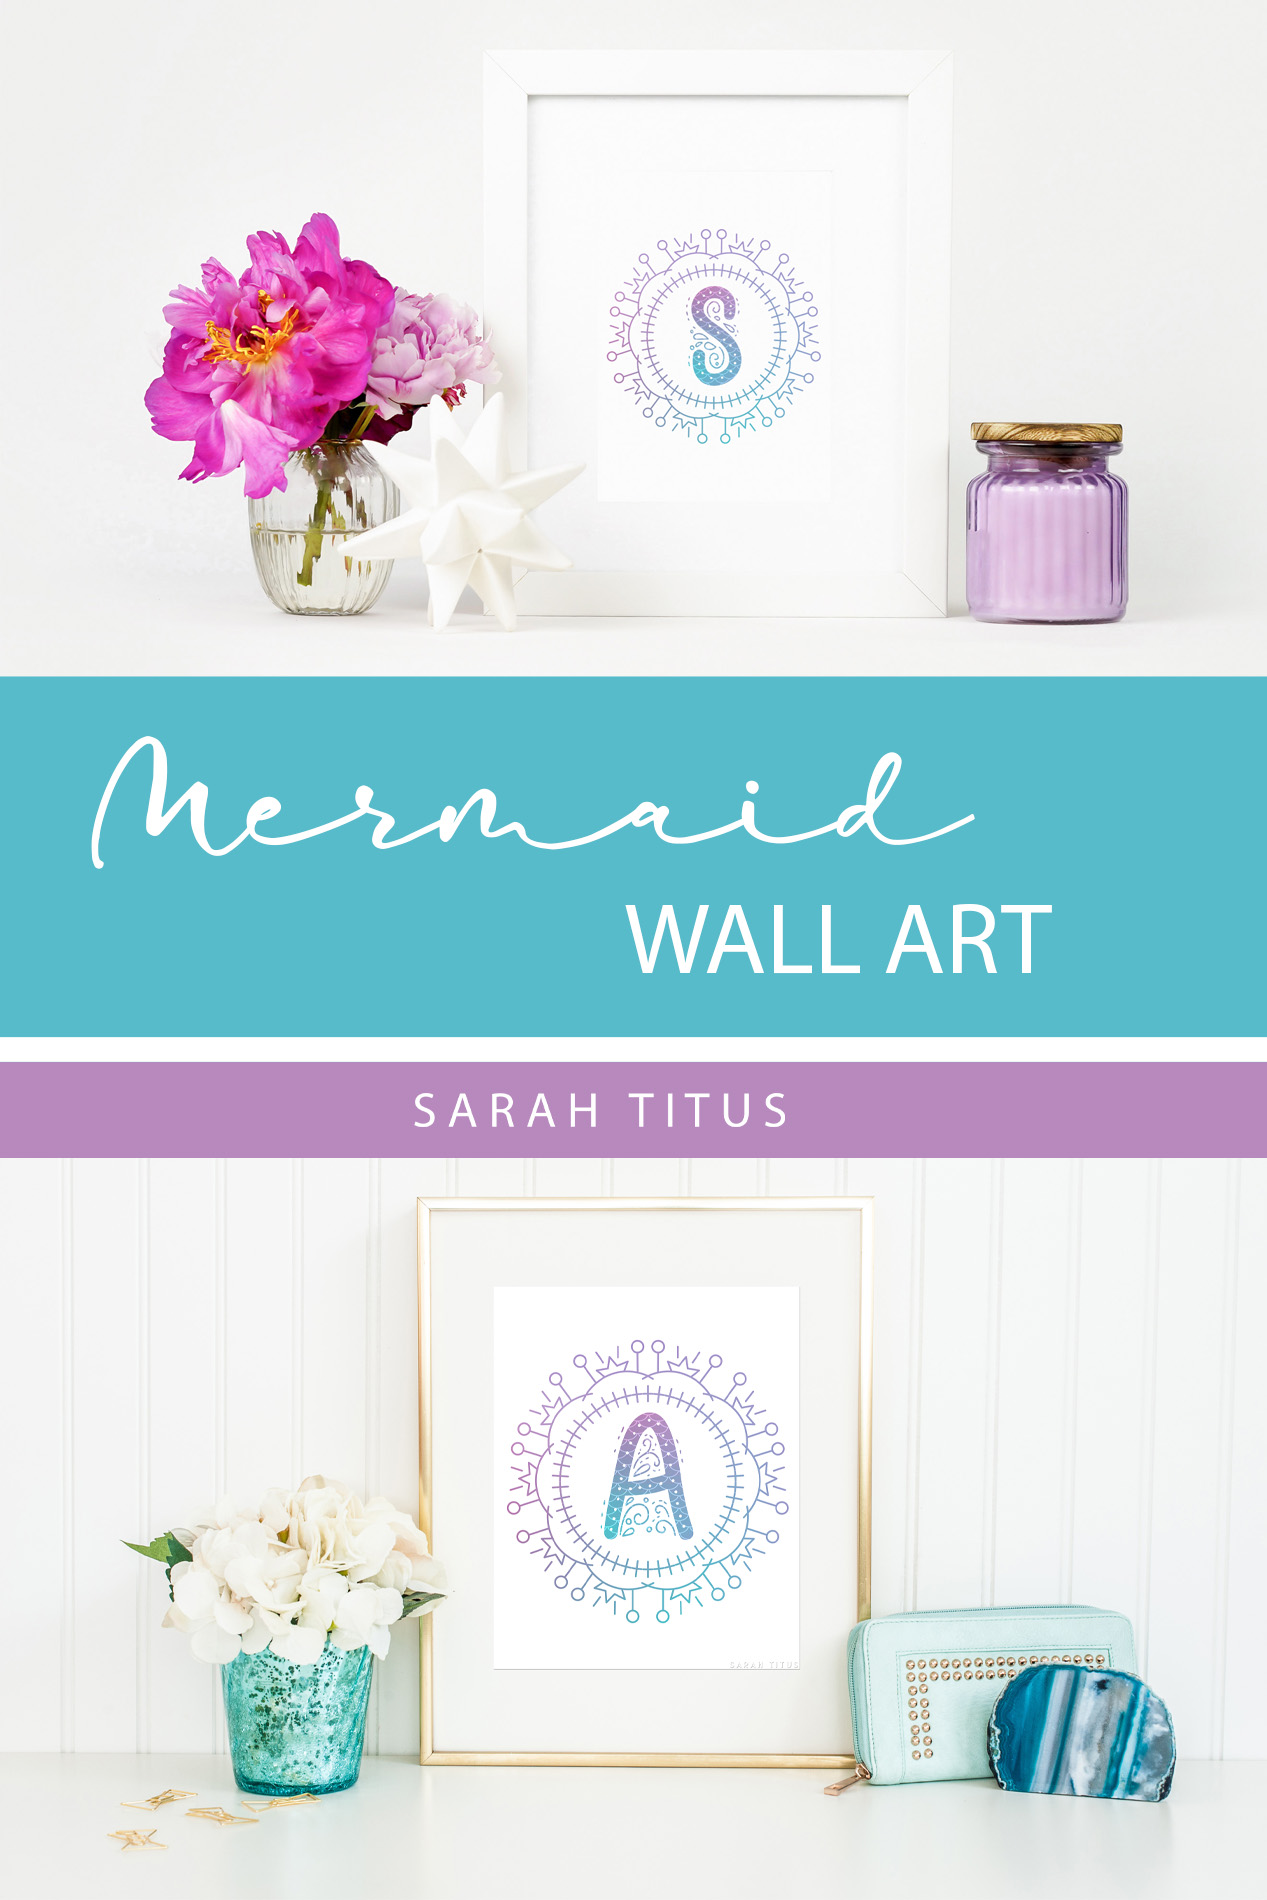 Whether you use this for a binder or as wall art, your teen is sure to love these free printable mermaid monogram wall arts! #freeprintablewallart #mermaidprintables #bindercovers #mermaidmonogramwallart #monogramwallart